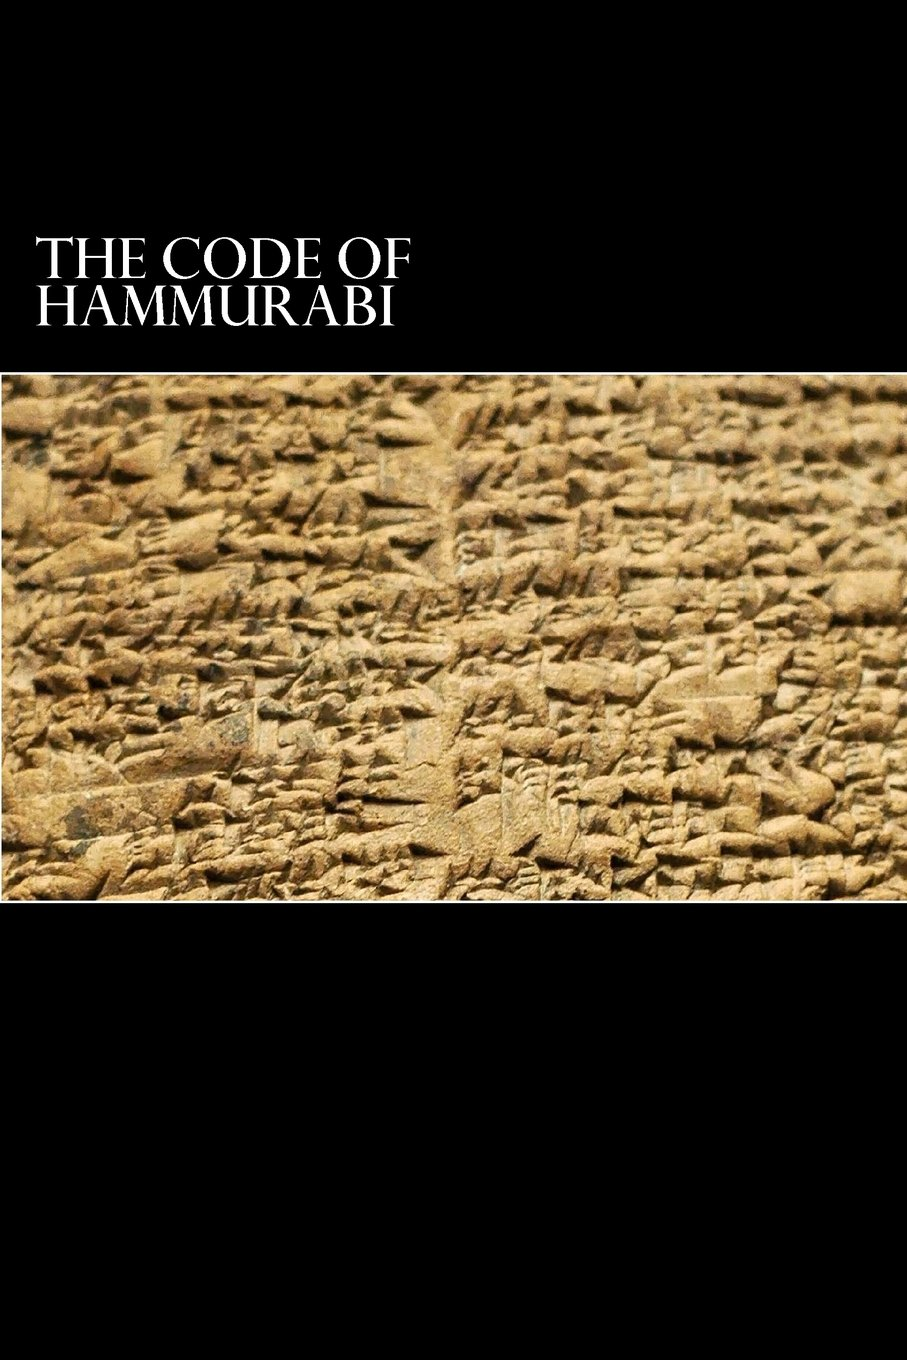 an introduction to the life of hammurabi a king of babylonia The paperback of the the rosetta stone & the code of hammurabi by sir e a wallis budge, king of babylonia hammurabi the introduction includes chapters such.